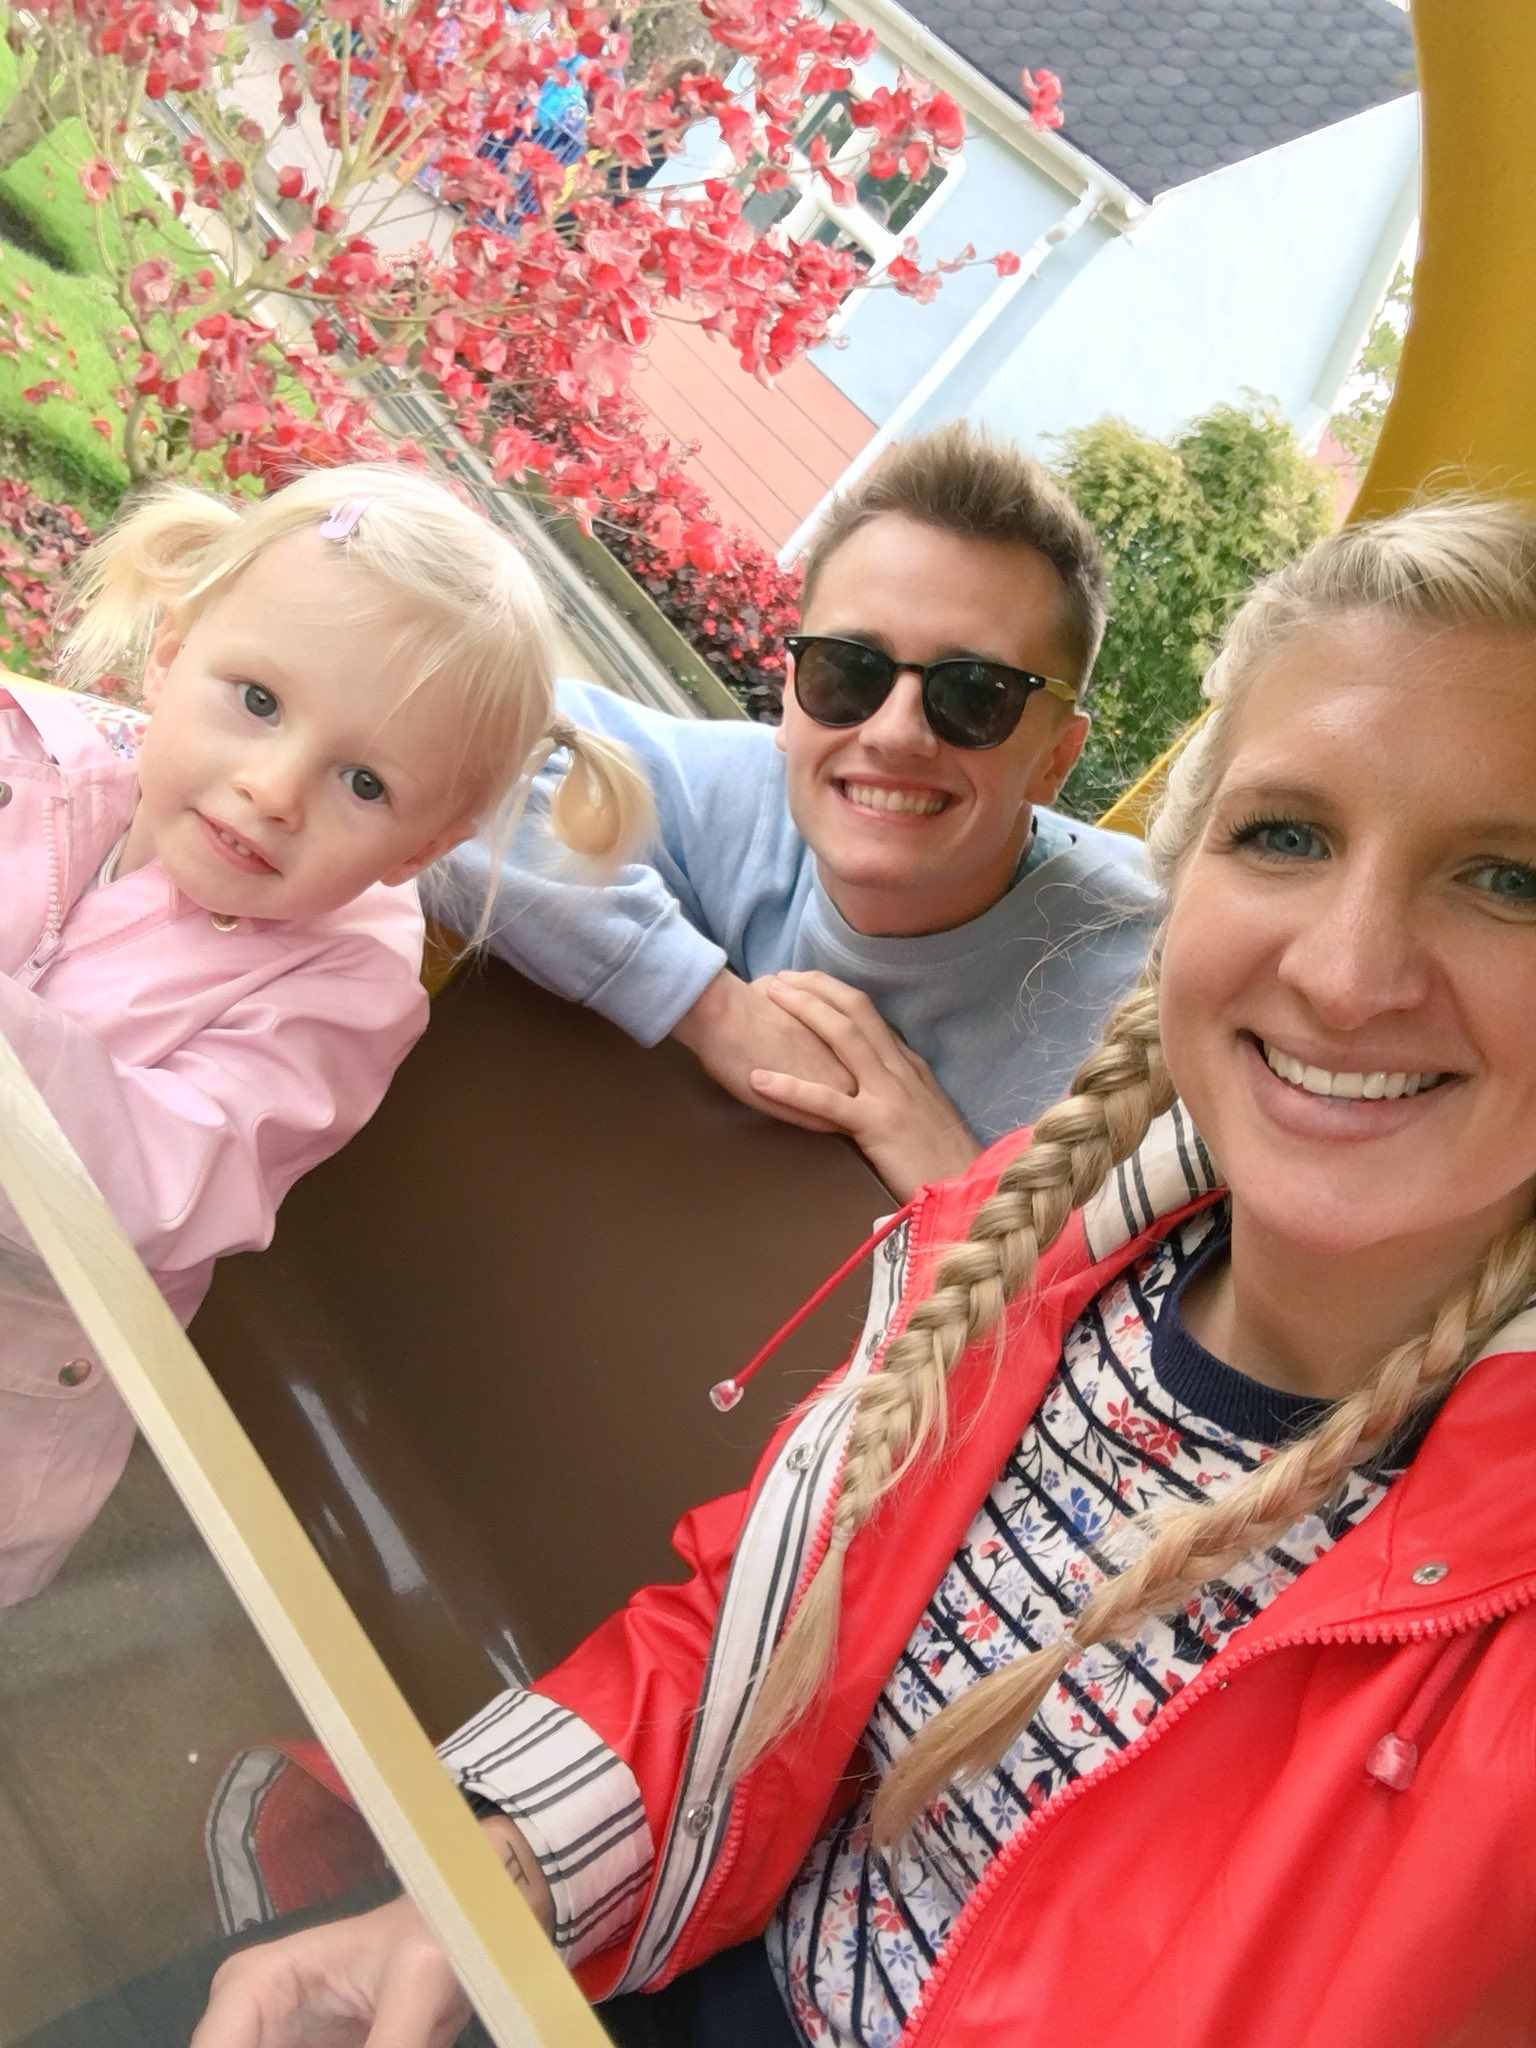 Great day at Peppa Pig World @paultonspark ! Summer LOVED it #familytime #weekend #peppapig https://t.co/ZezUdOPX8l